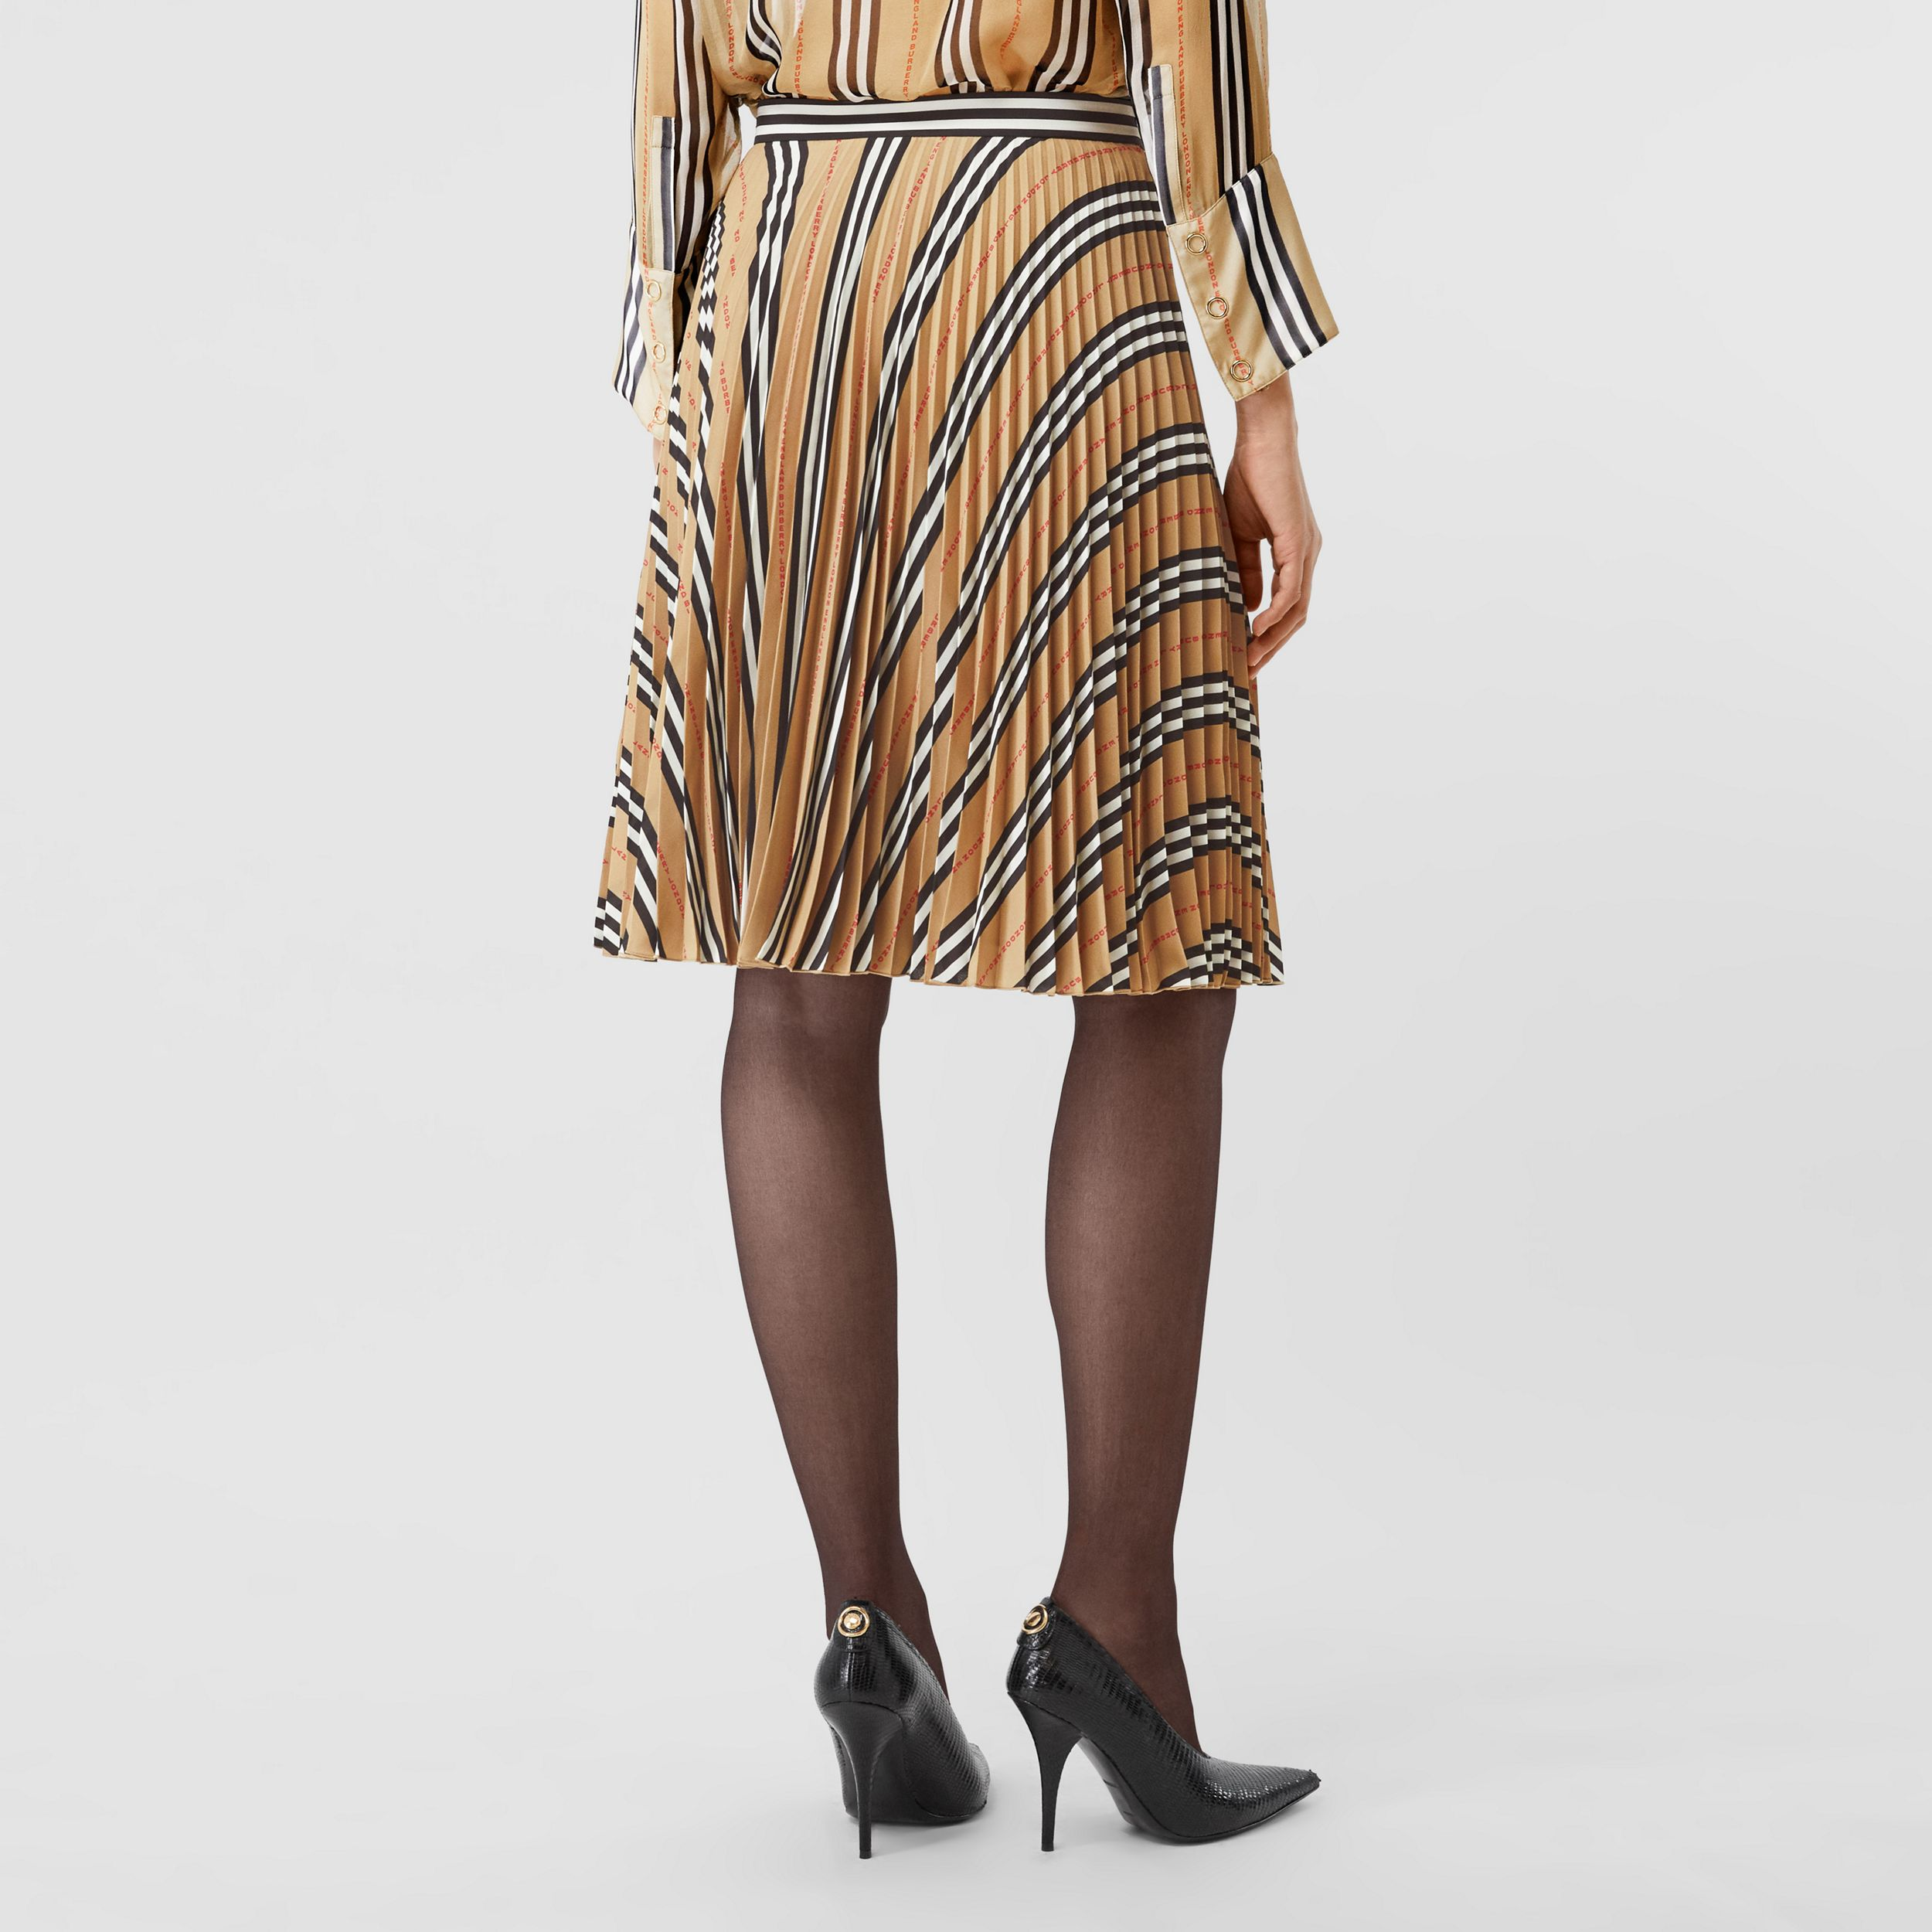 Logo and Stripe Print Crepe Pleated Skirt in Archive Beige - Women | Burberry Hong Kong S.A.R - 3